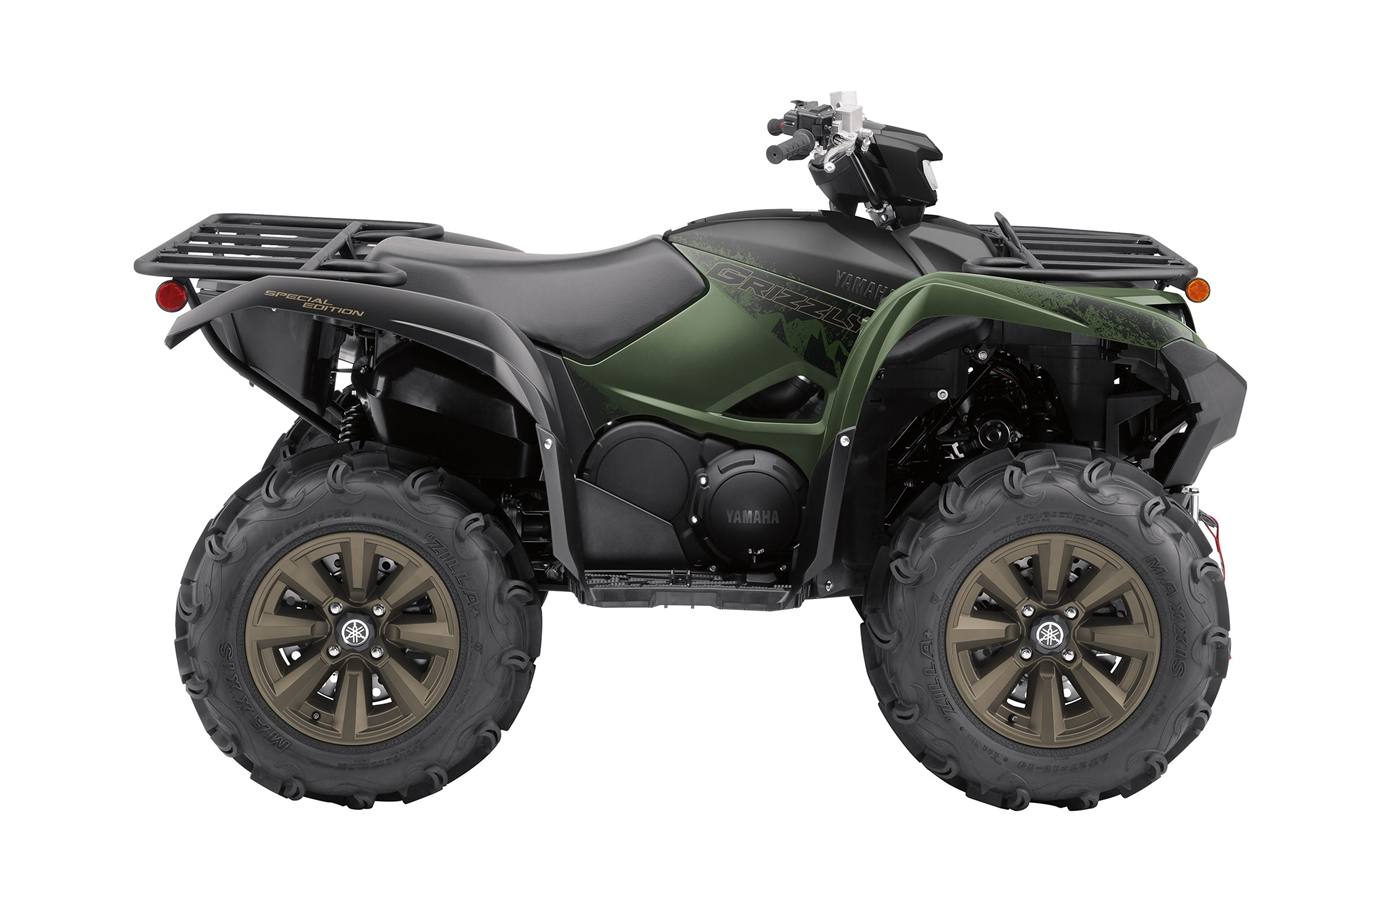 2021 Yamaha Grizzly Eps Se For Sale In Albert Ab Riverside Motosports Albert Ab 780 458 7272